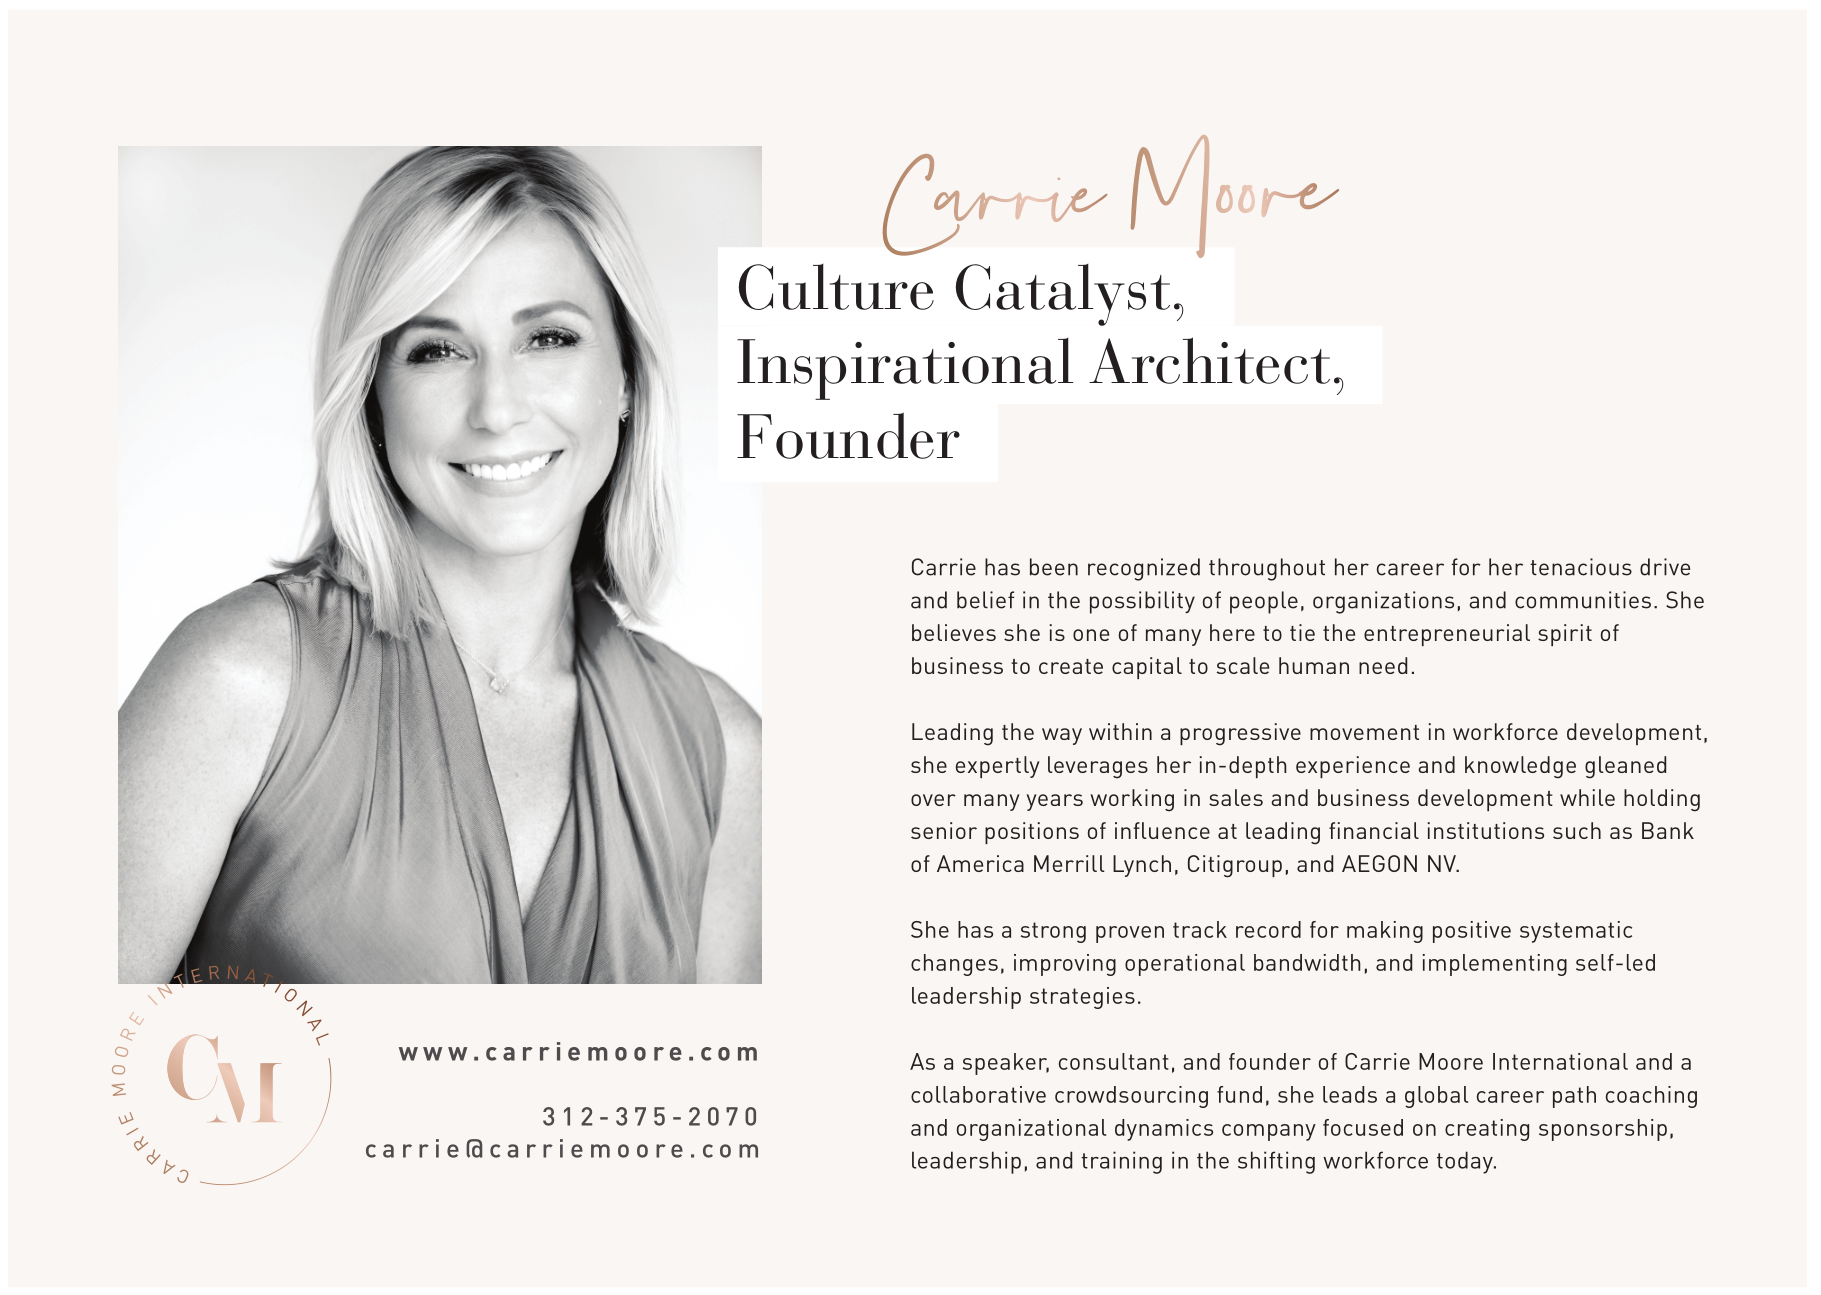 Meet our sponsor - Carrie Moore